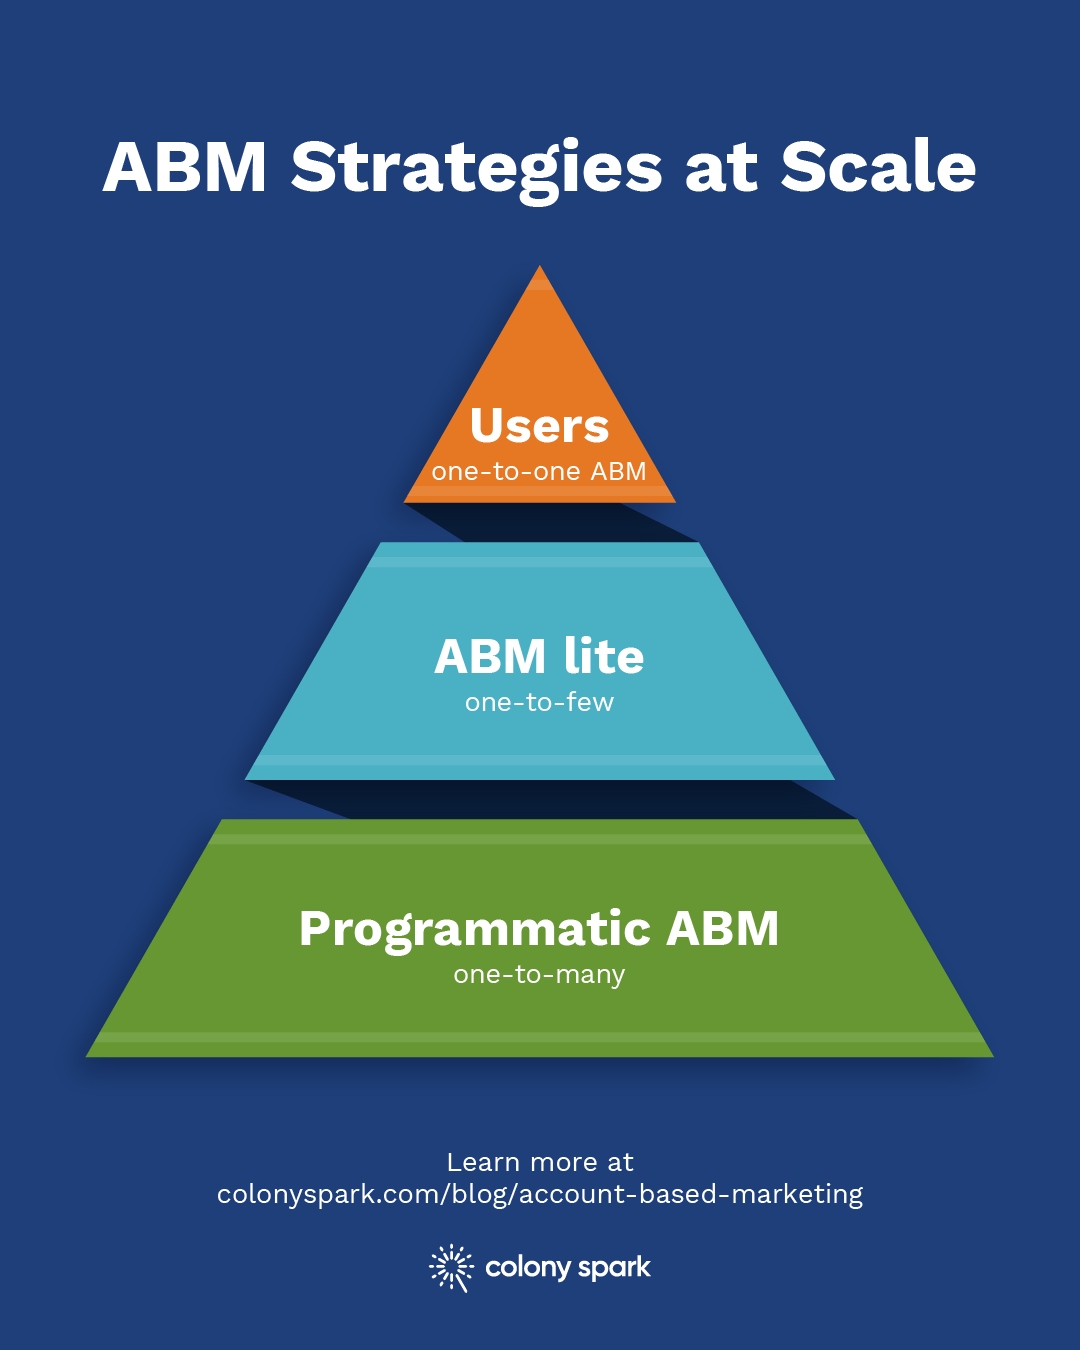 The three main kinds of ABM strategy